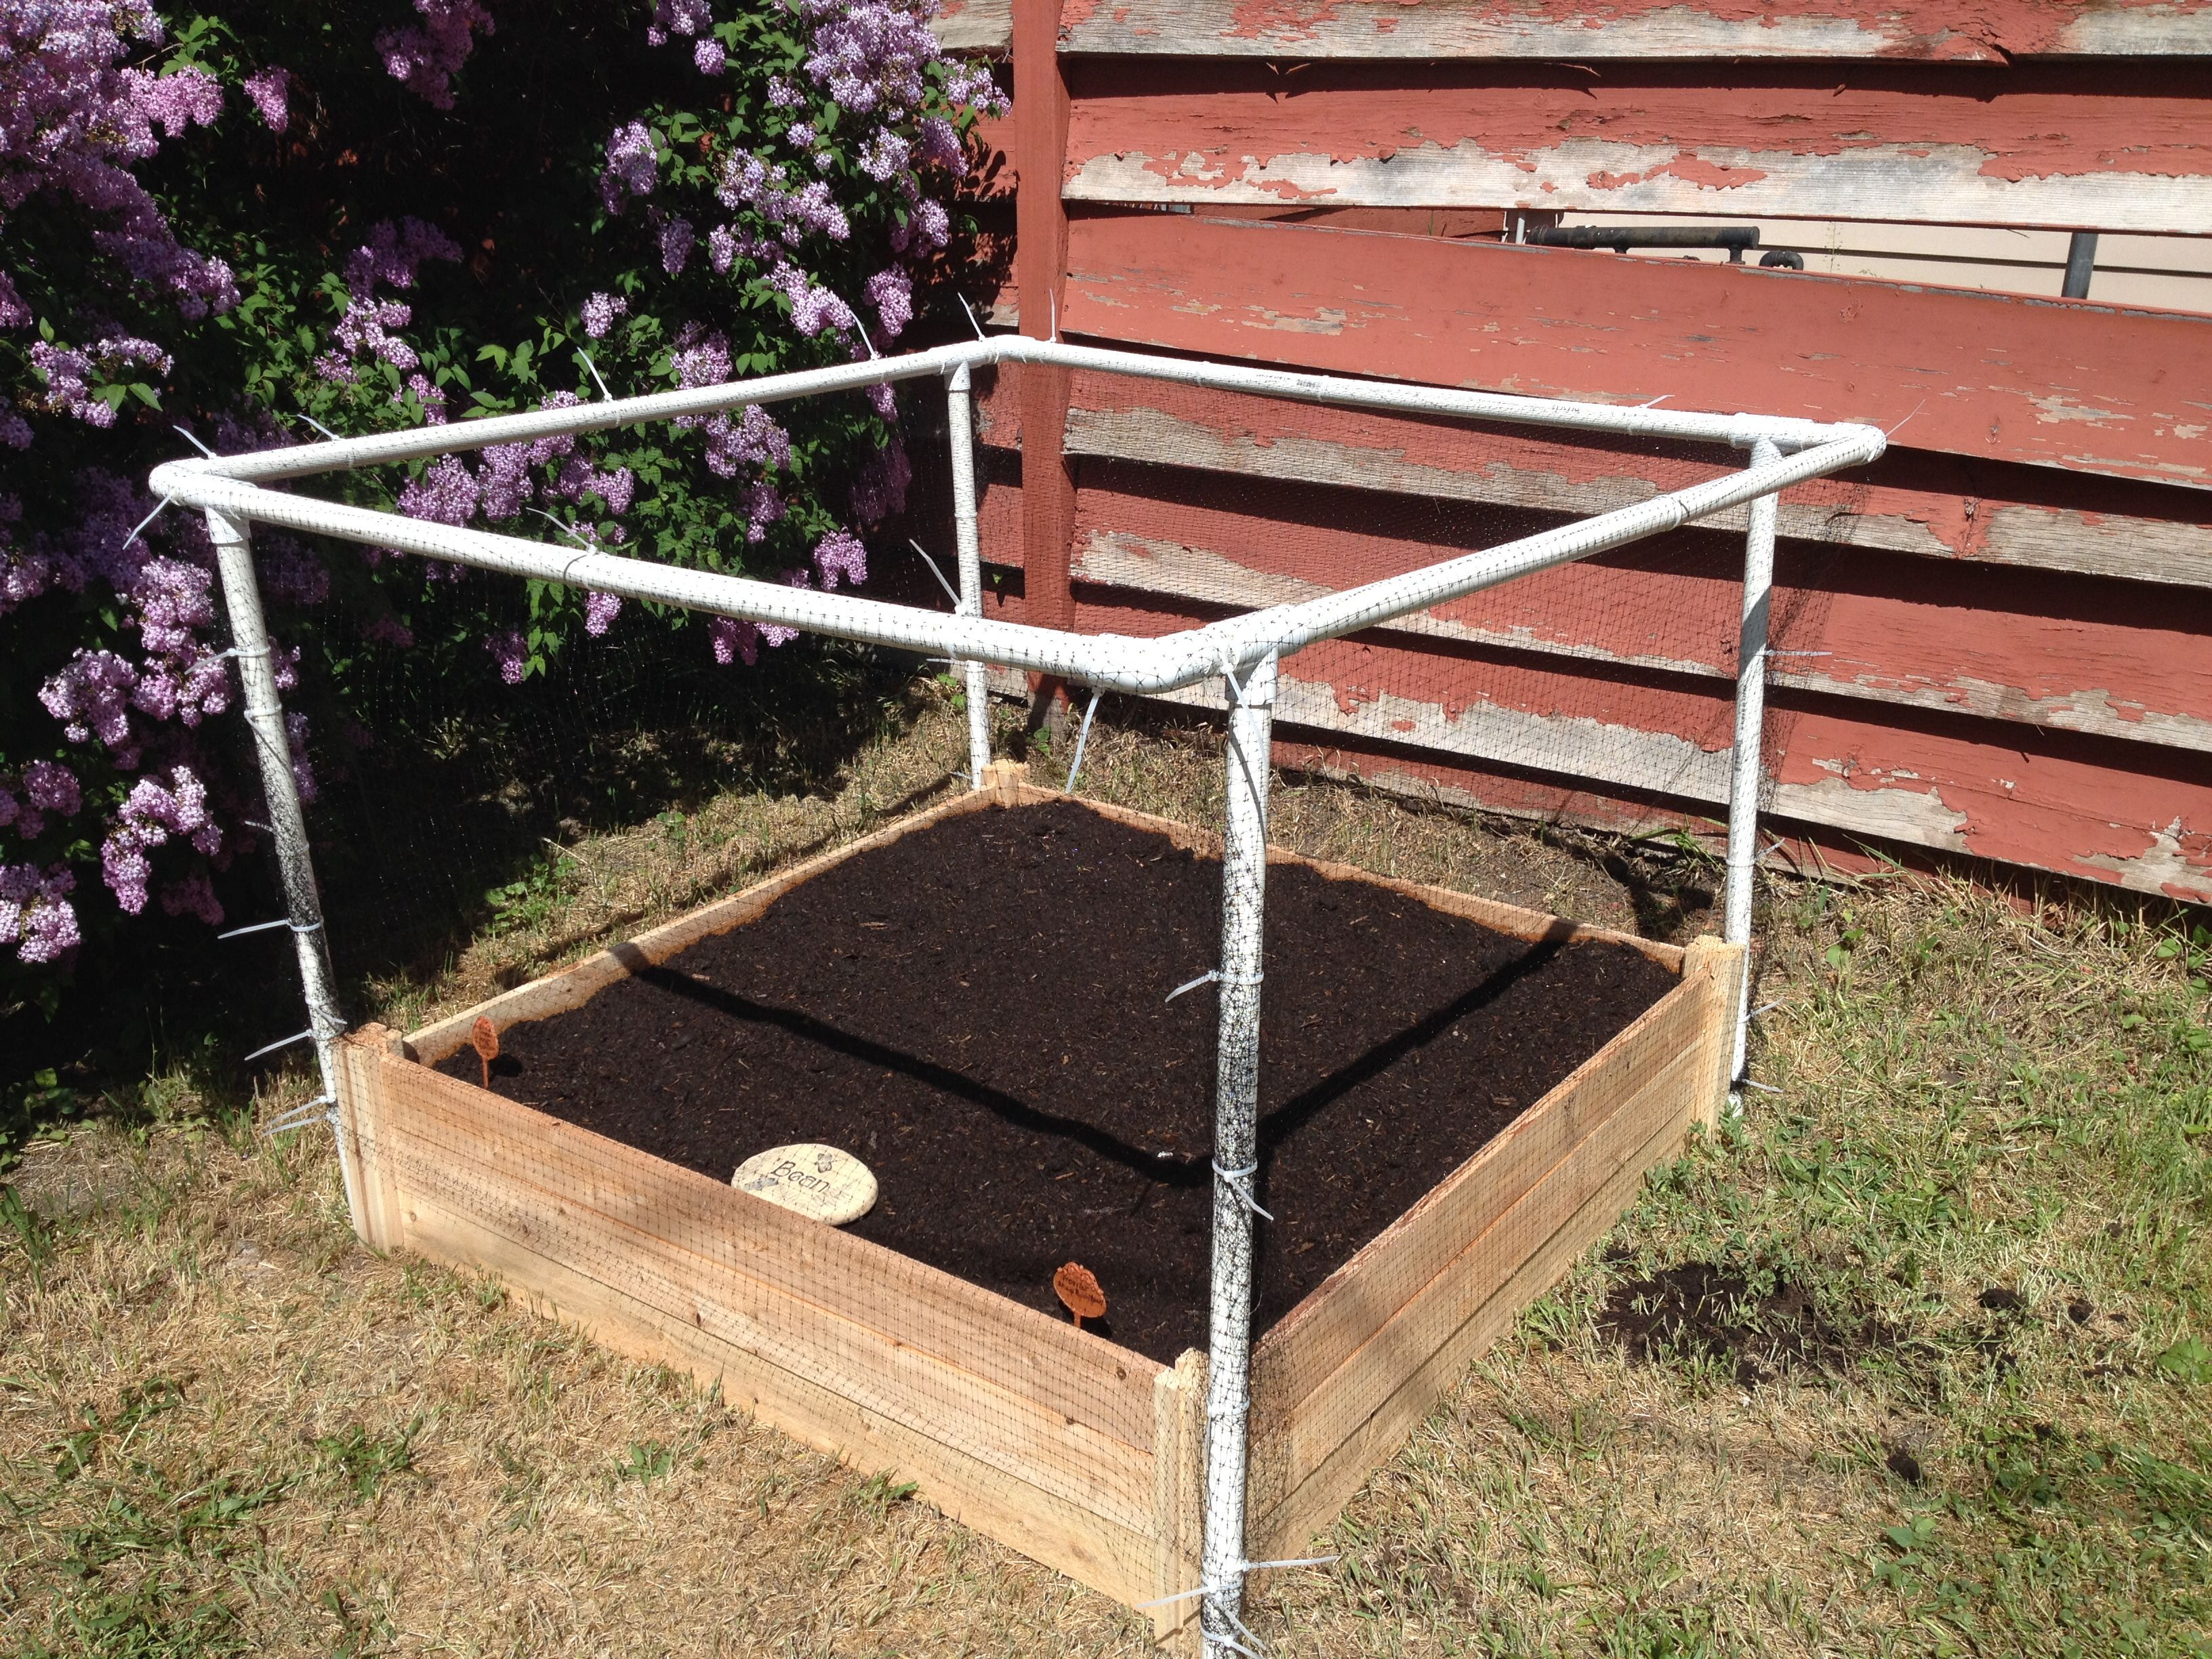 Protect your garden from cats, deer and rabbits. My DIY